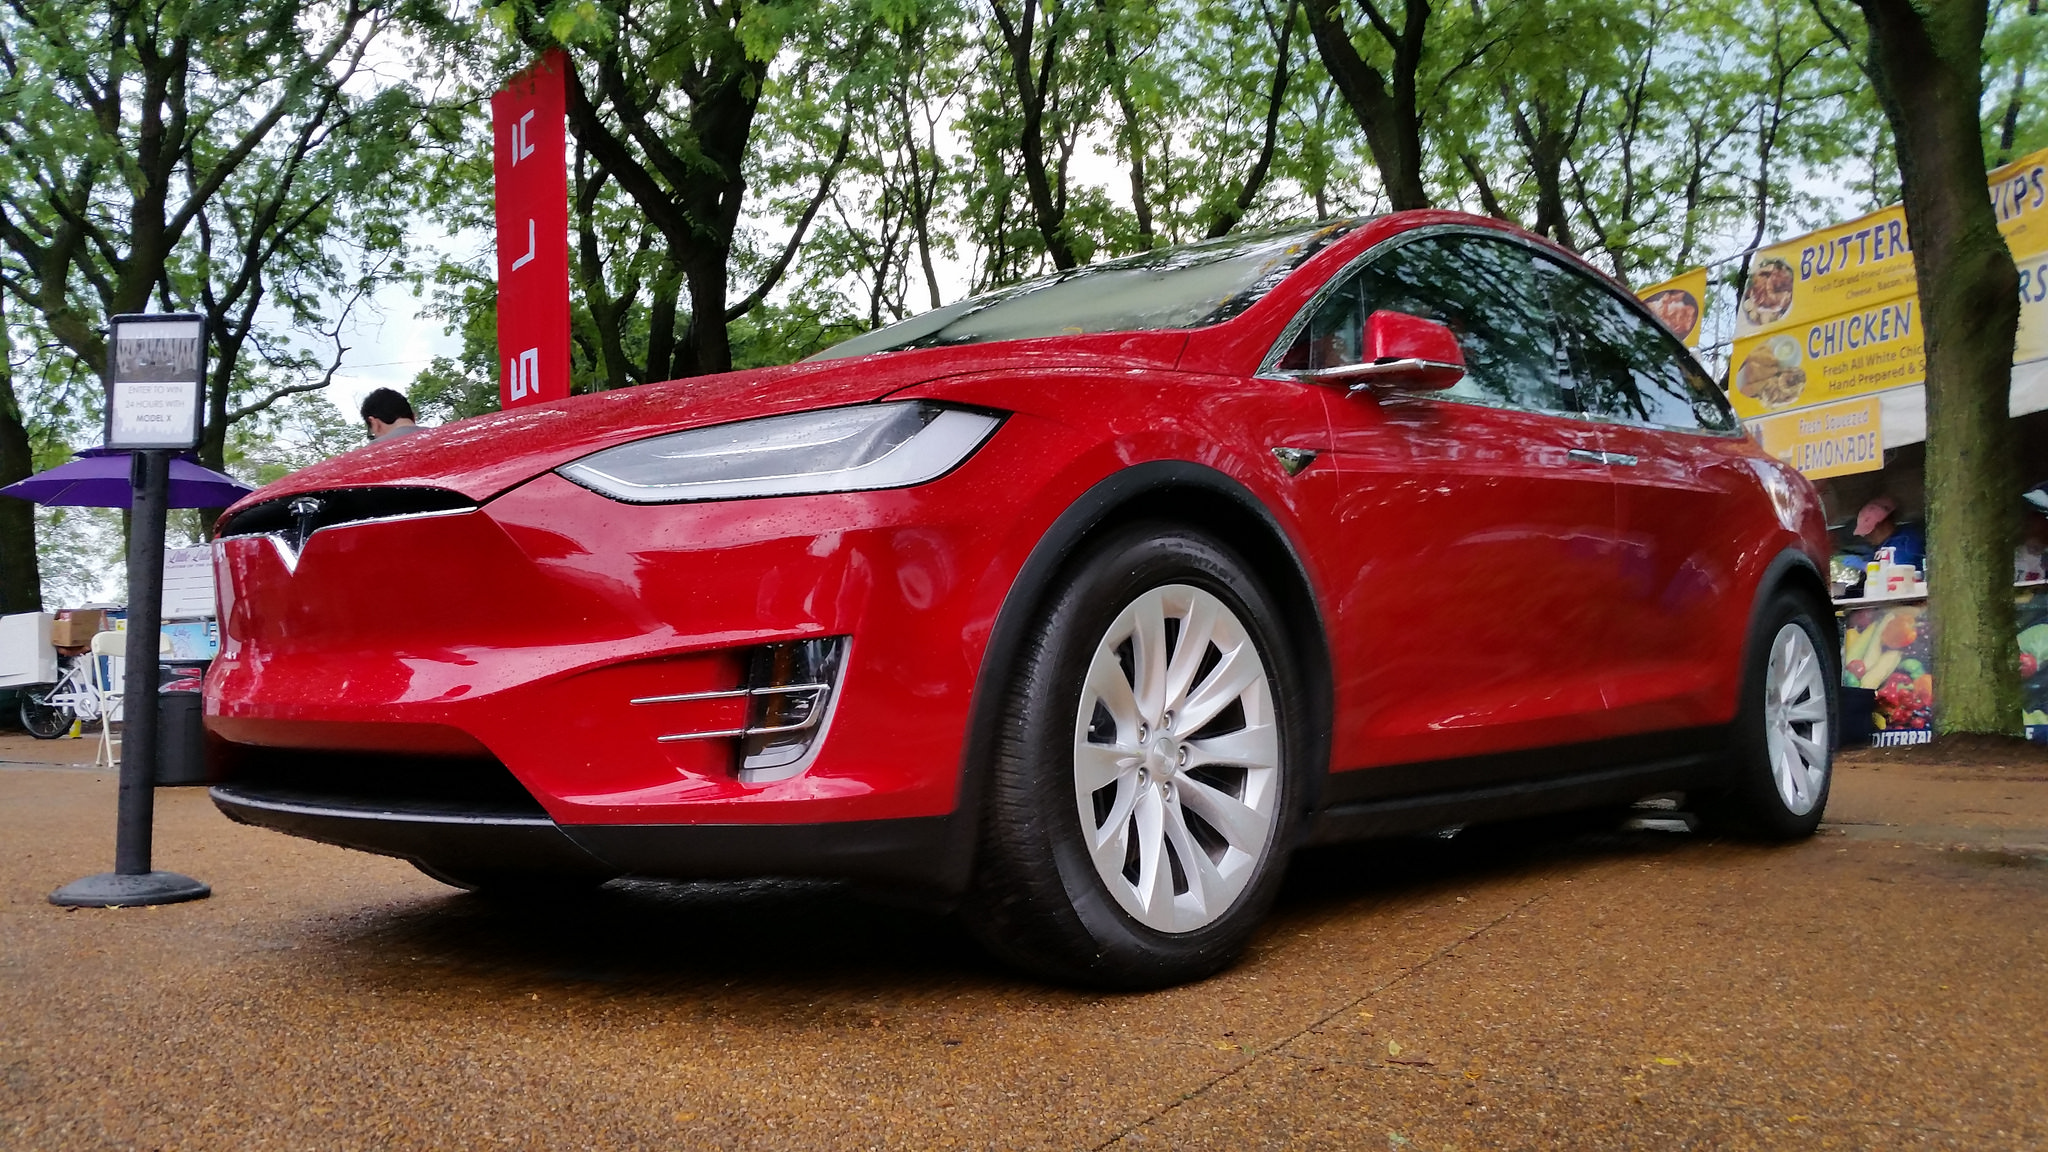 Tesla Model X Accelerated Toward Barrier Before Fatal Crash